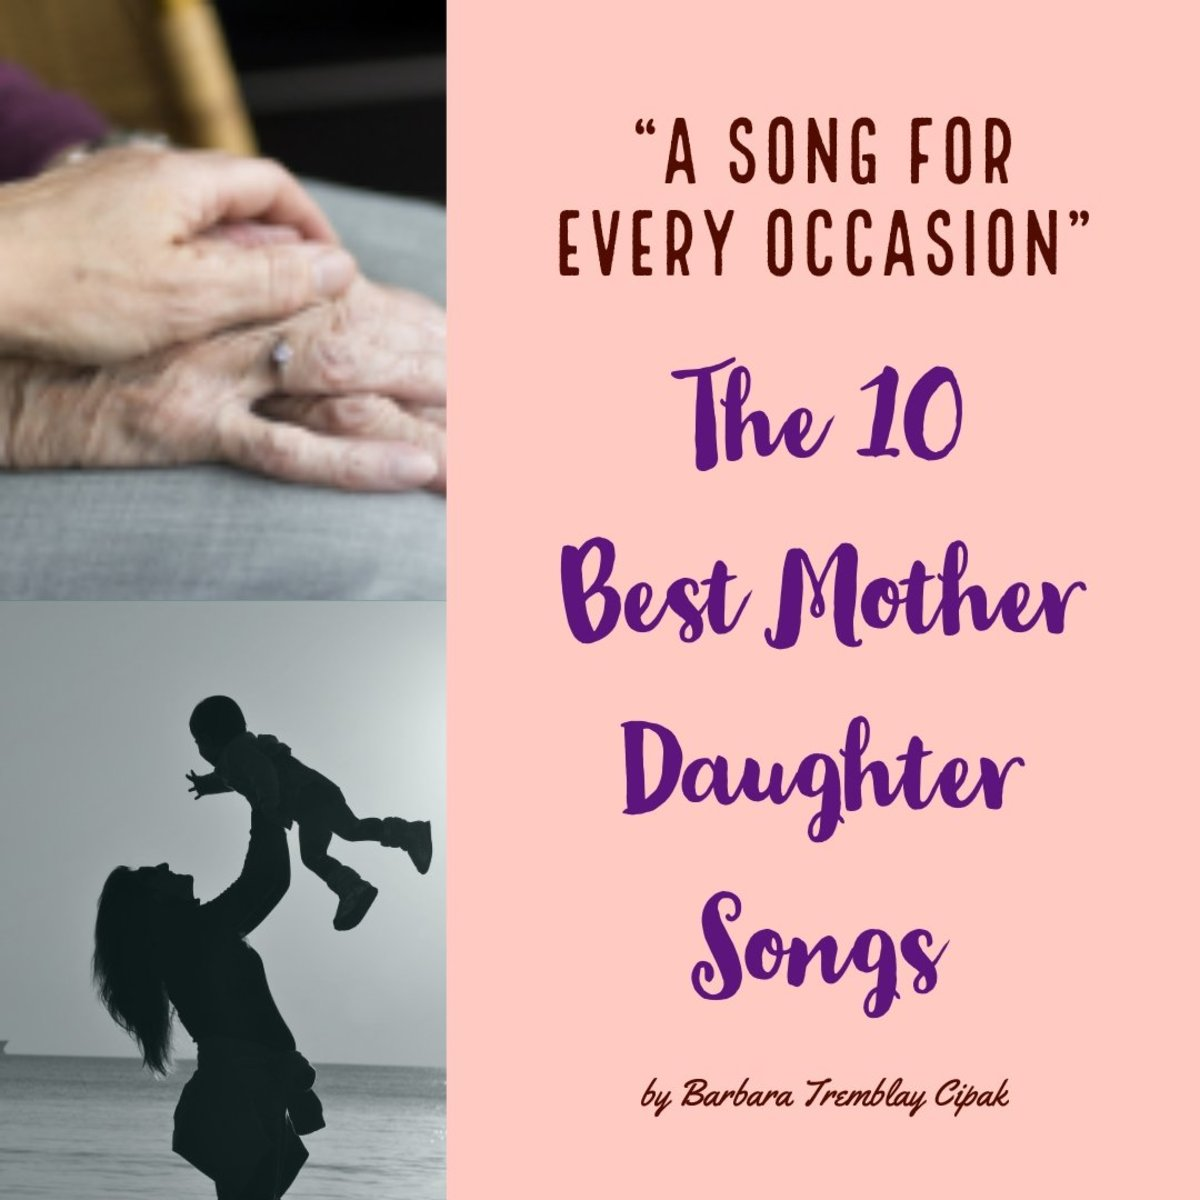 Top 10 Best Mother Daughter Songs